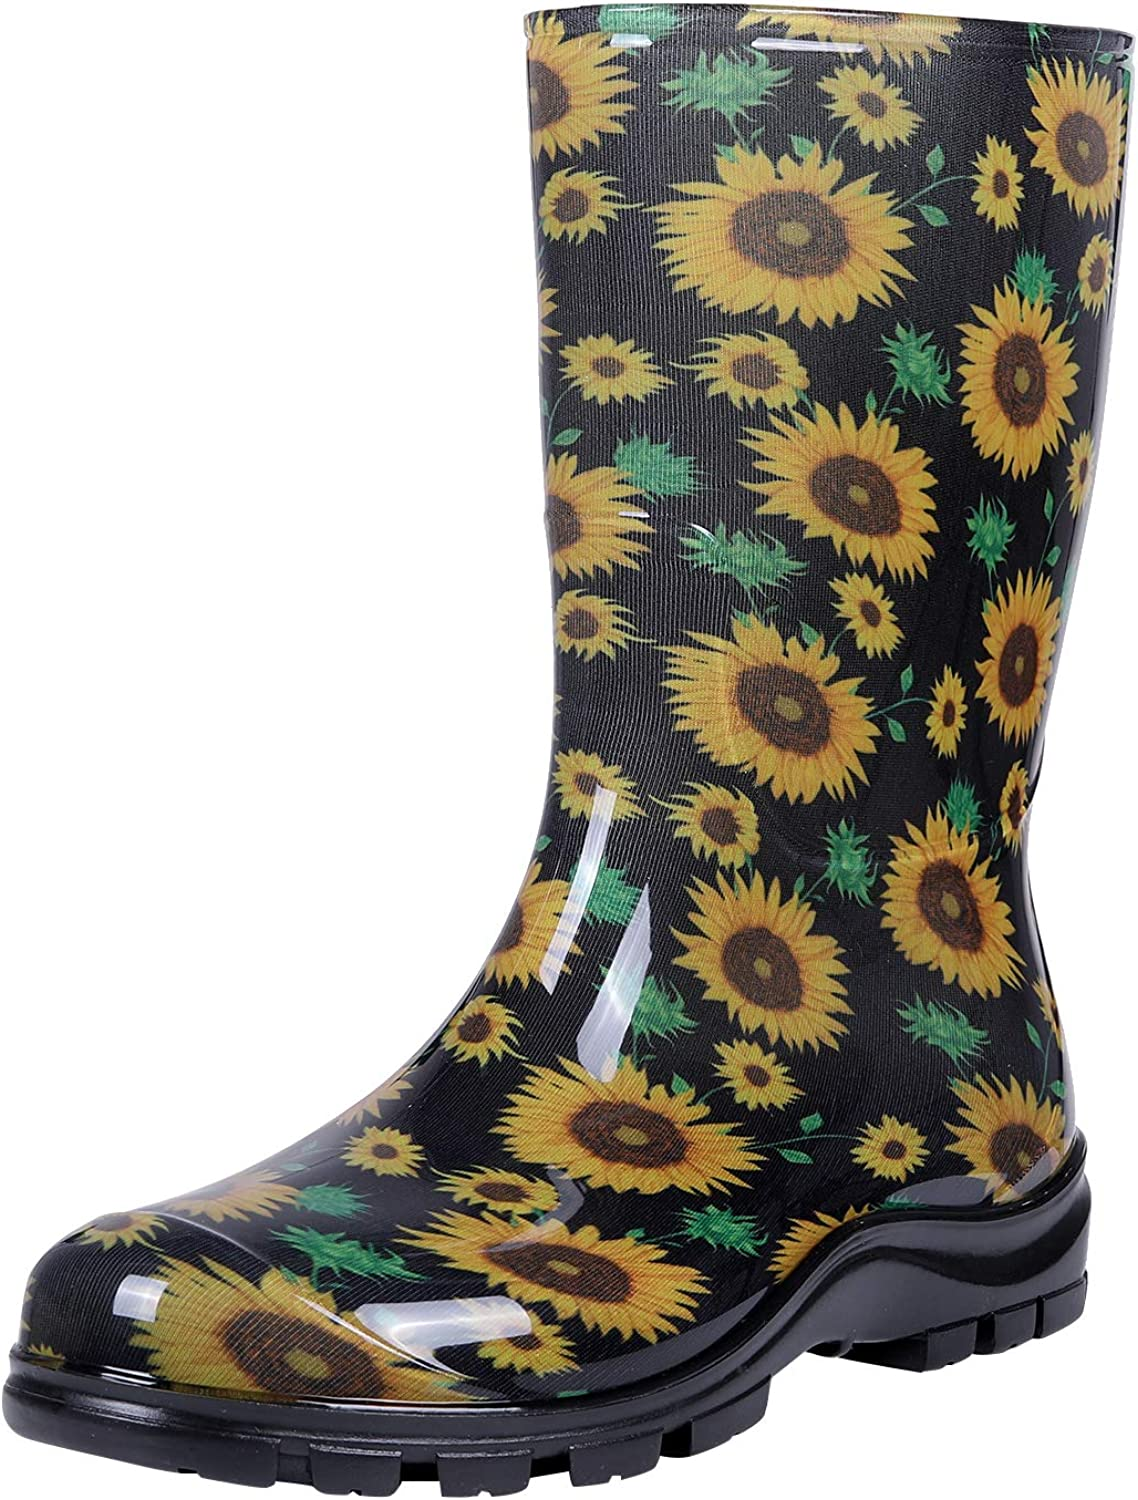 Asgard Women's Mid Calf Rain Boots Short Waterproof Garden Shoes